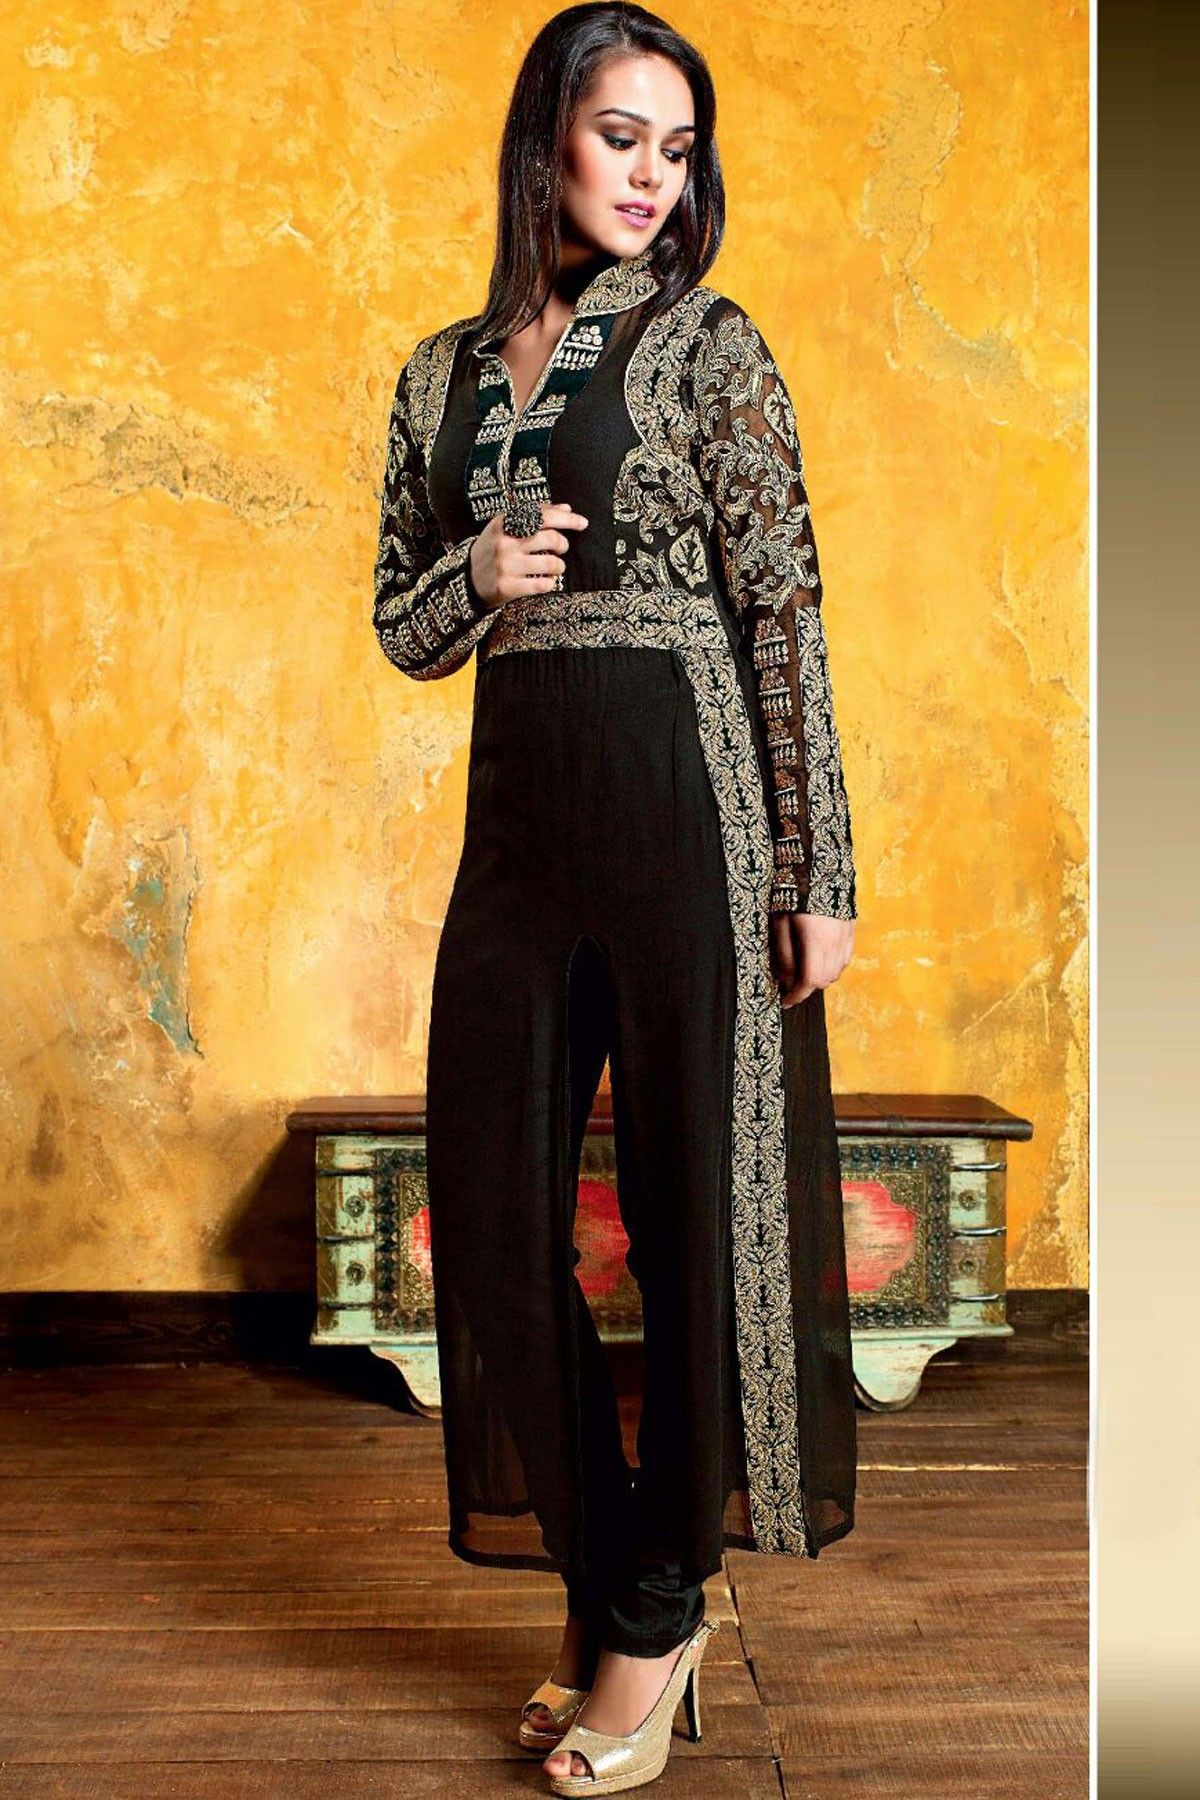 89c10aaaad Black & oxidised gold georgette straight cut lovely kurti with standing  collar -SL3802 #black #gold #straight #cut #kurti #designs #latest  #exclusive #nice ...